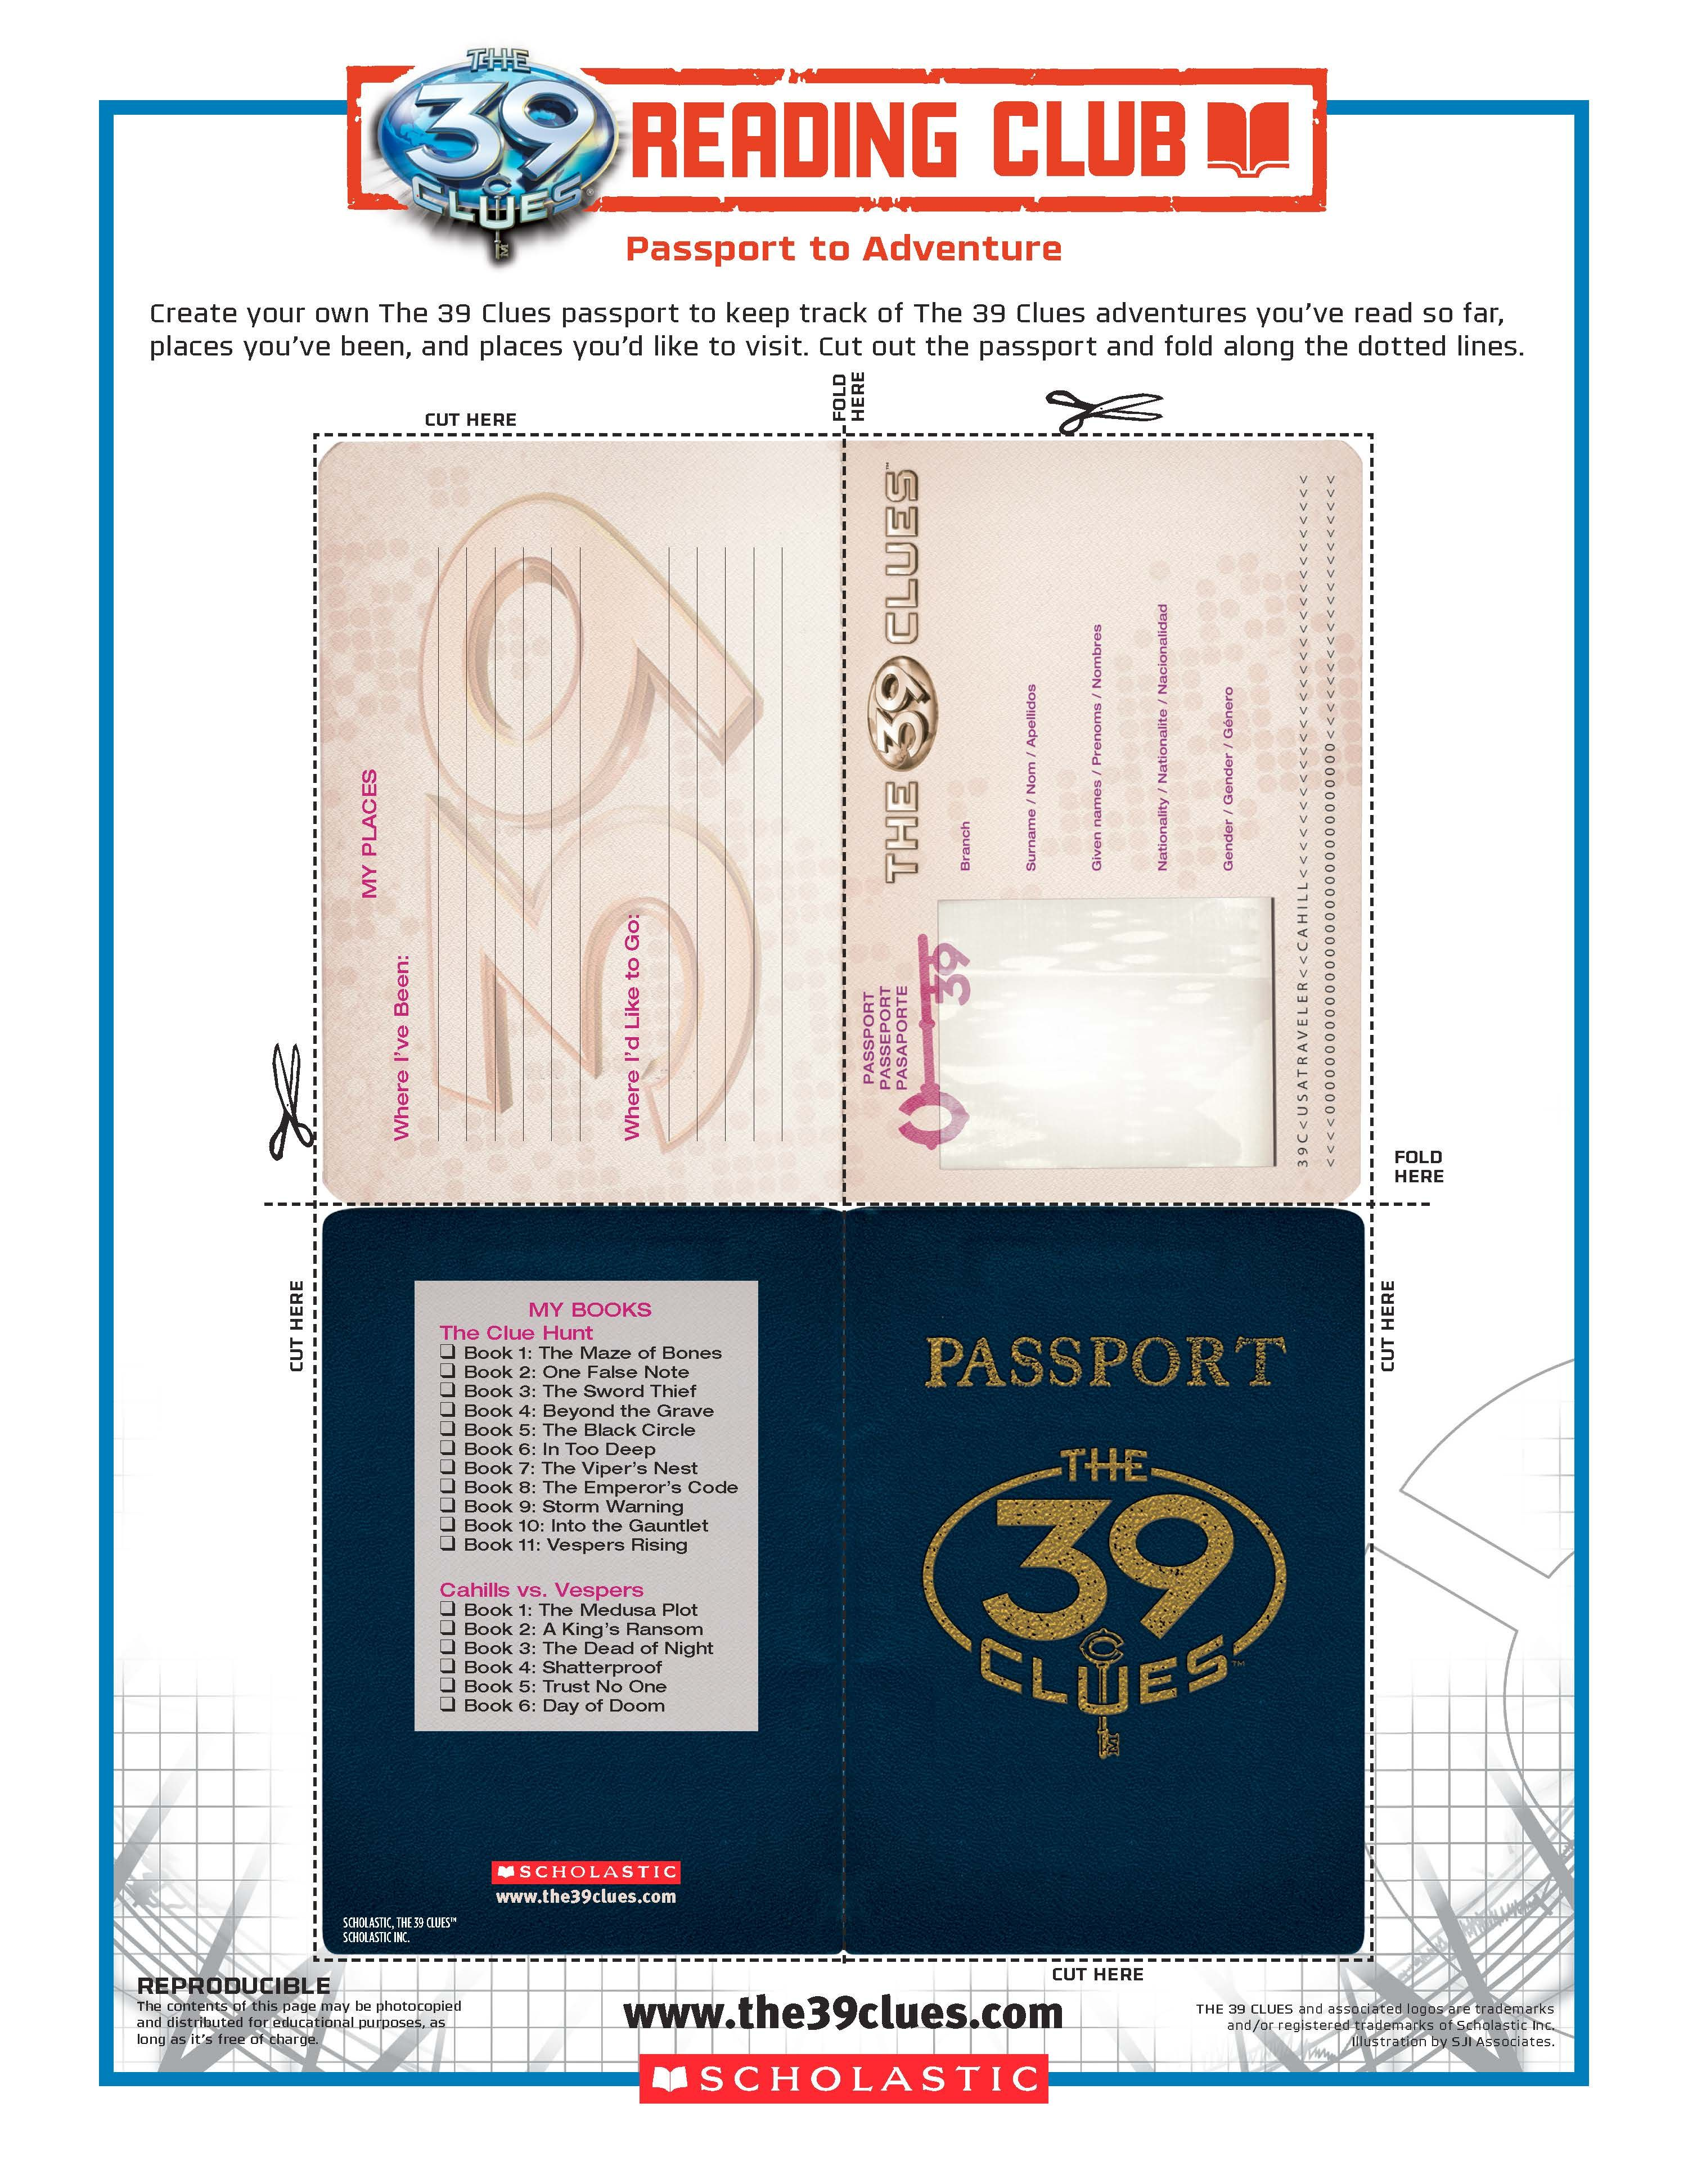 Have Club Members Make Their Own Passport To Adventure With The 39 Clues!  Find More